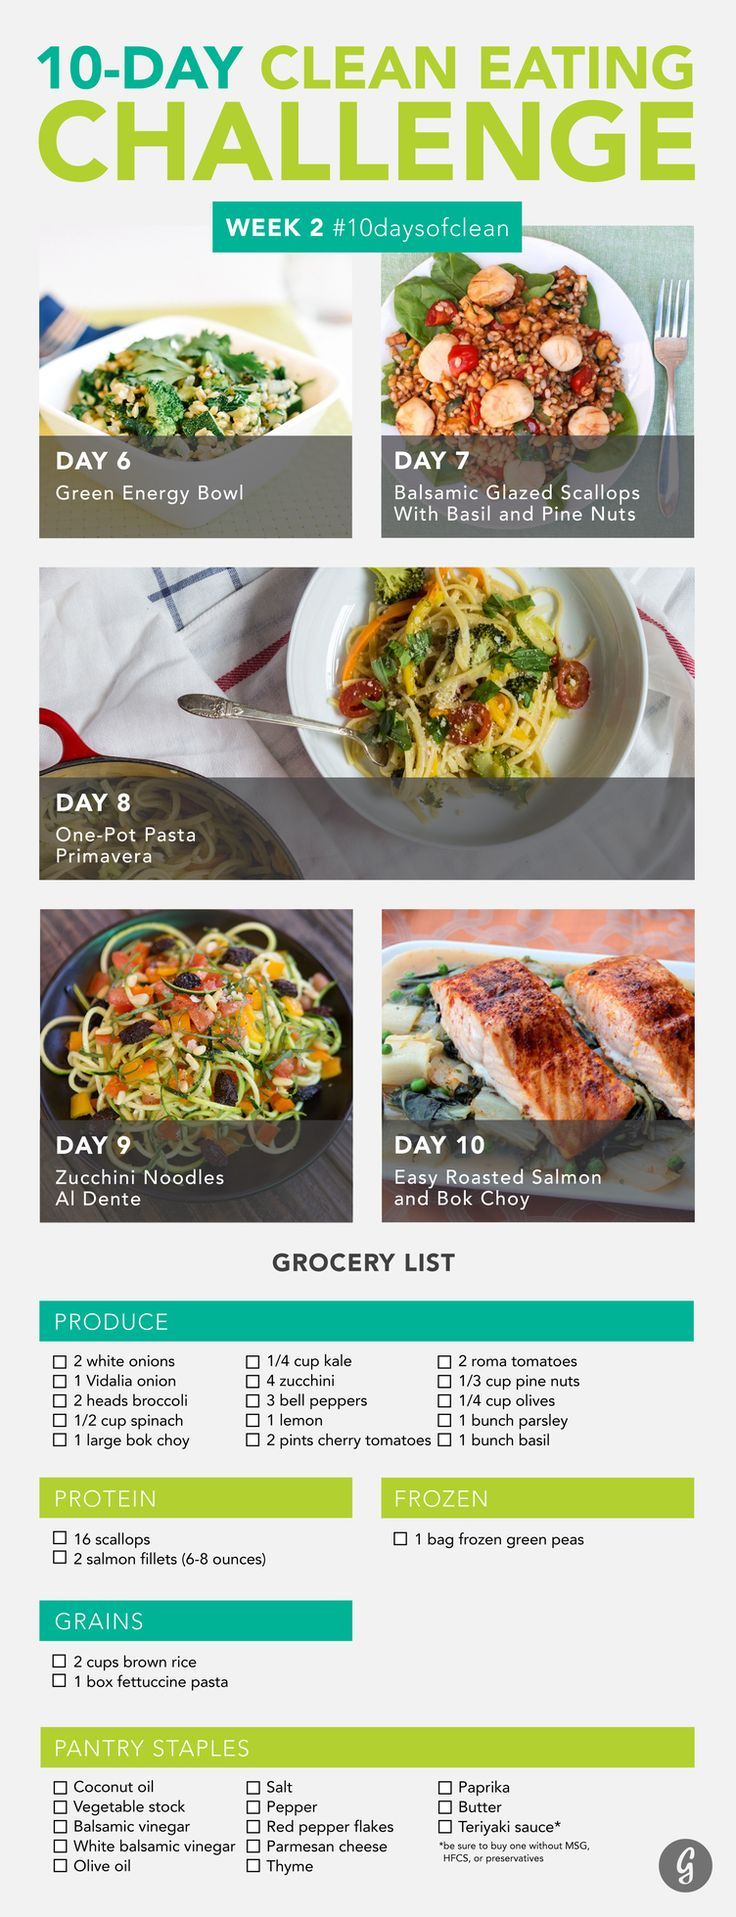 Clean Eating Challenge Week 2 #10daysofclean #healthy #recipes